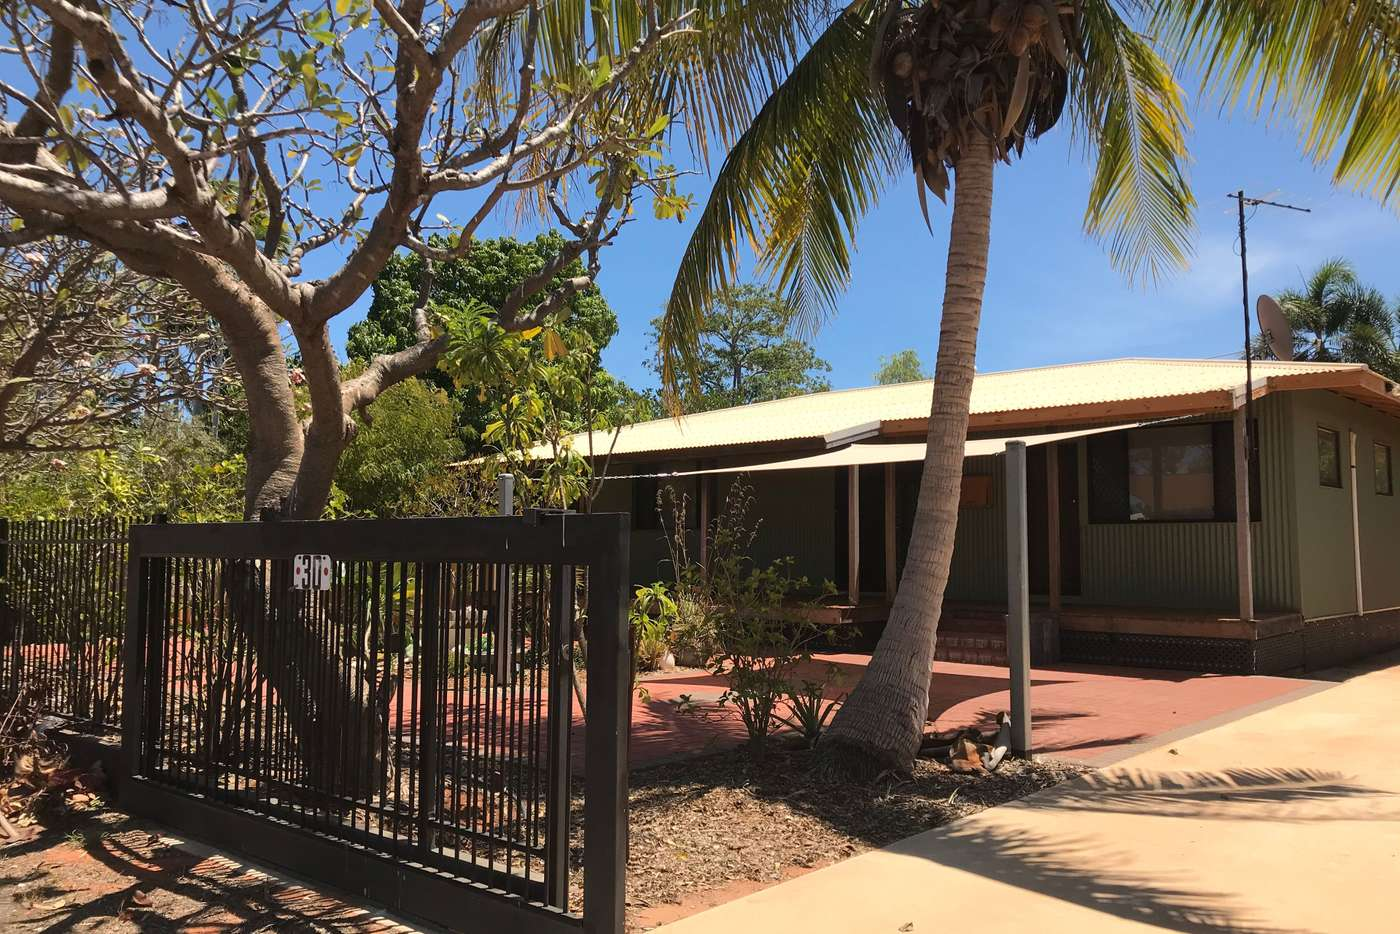 Main view of Homely house listing, 30 Saville Street, Broome WA 6725